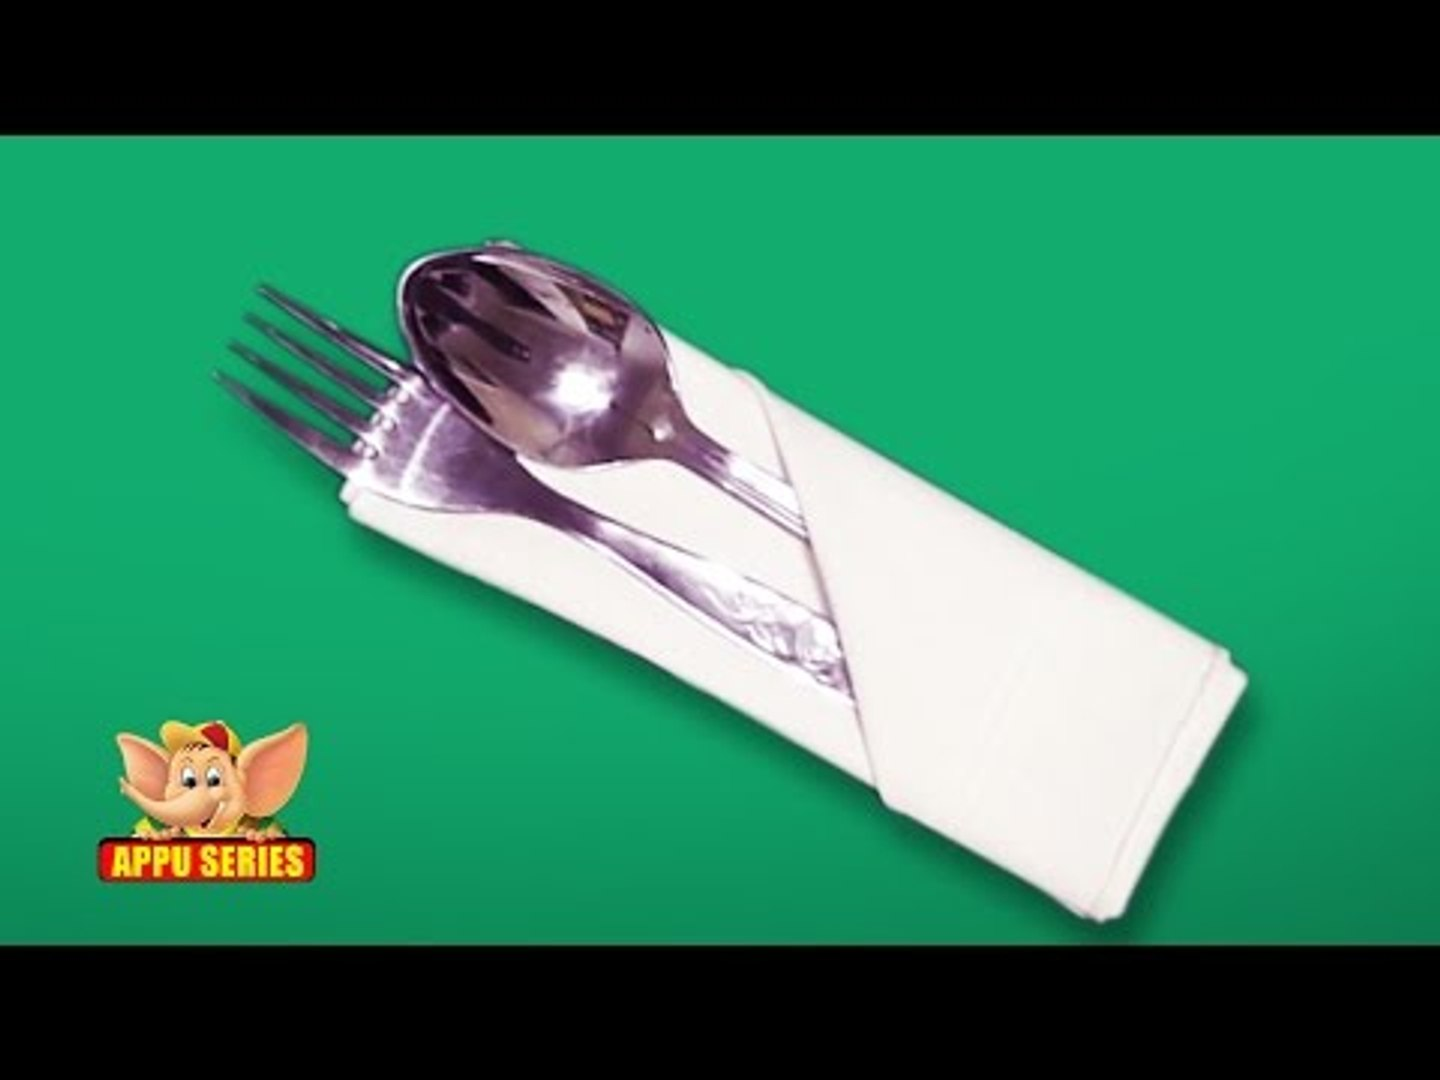 Fold A Silverware Napkin Pouch Video Dailymotion